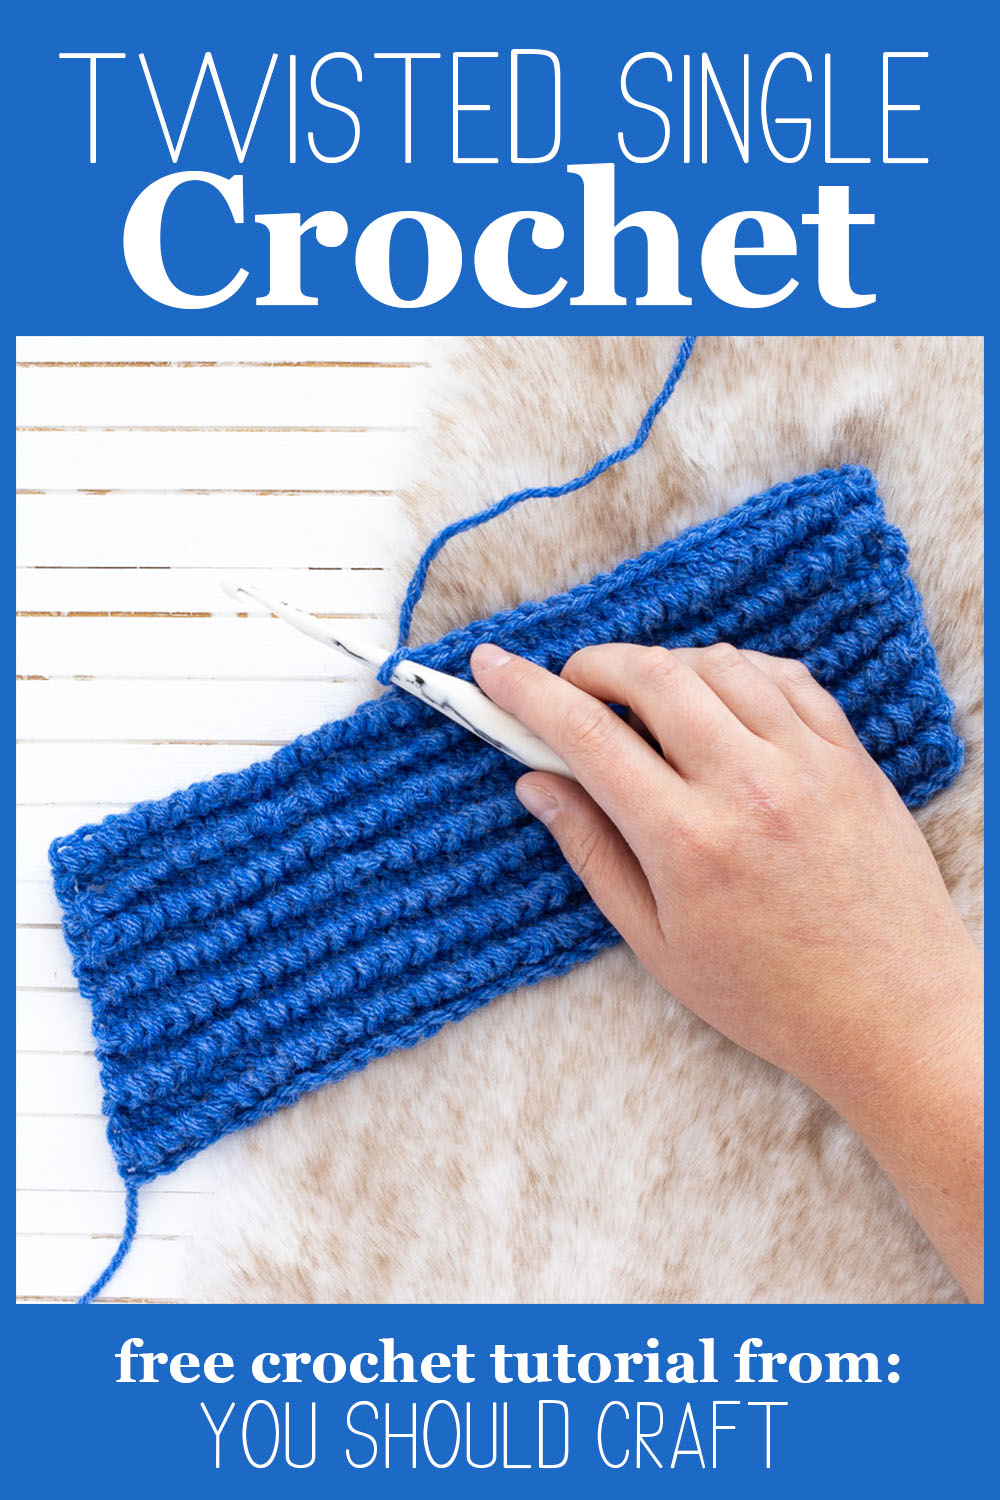 hand crocheting ribbing using the twisted single crochet, on a fur background.